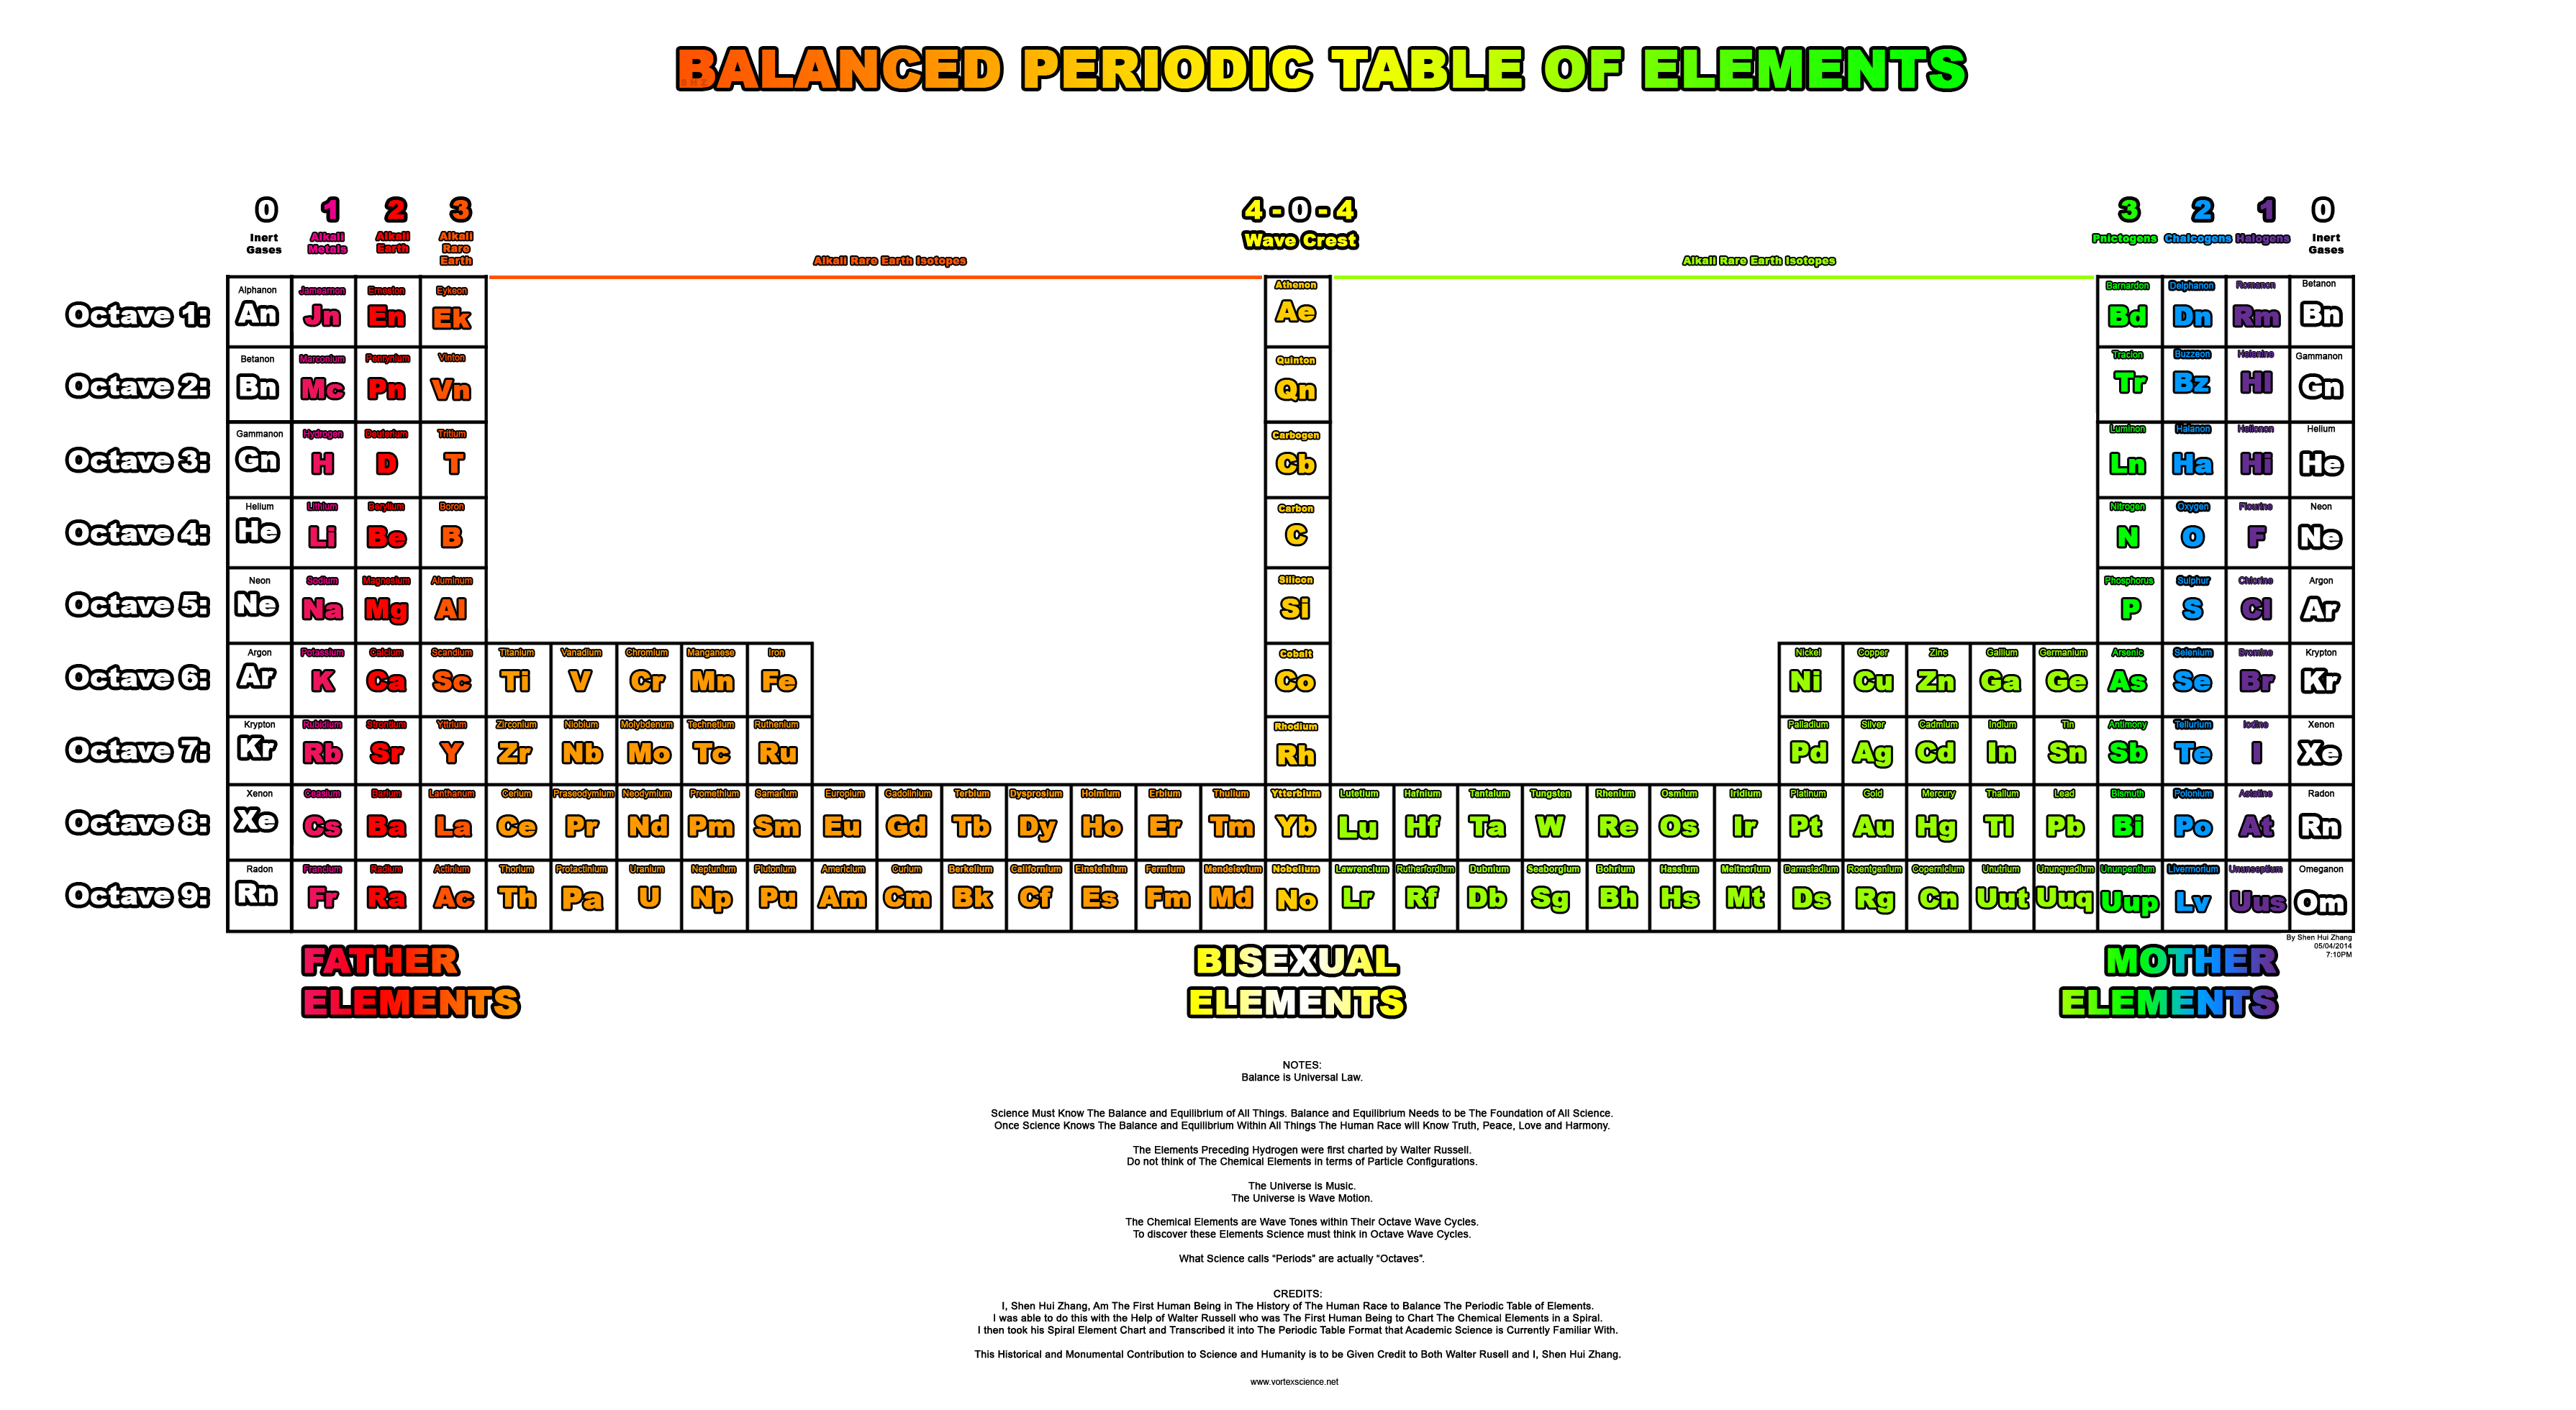 Sci science math the balanced periodic table of elements shen hui zhang wed jun 18 225053 2014 no6599338 gamestrikefo Images